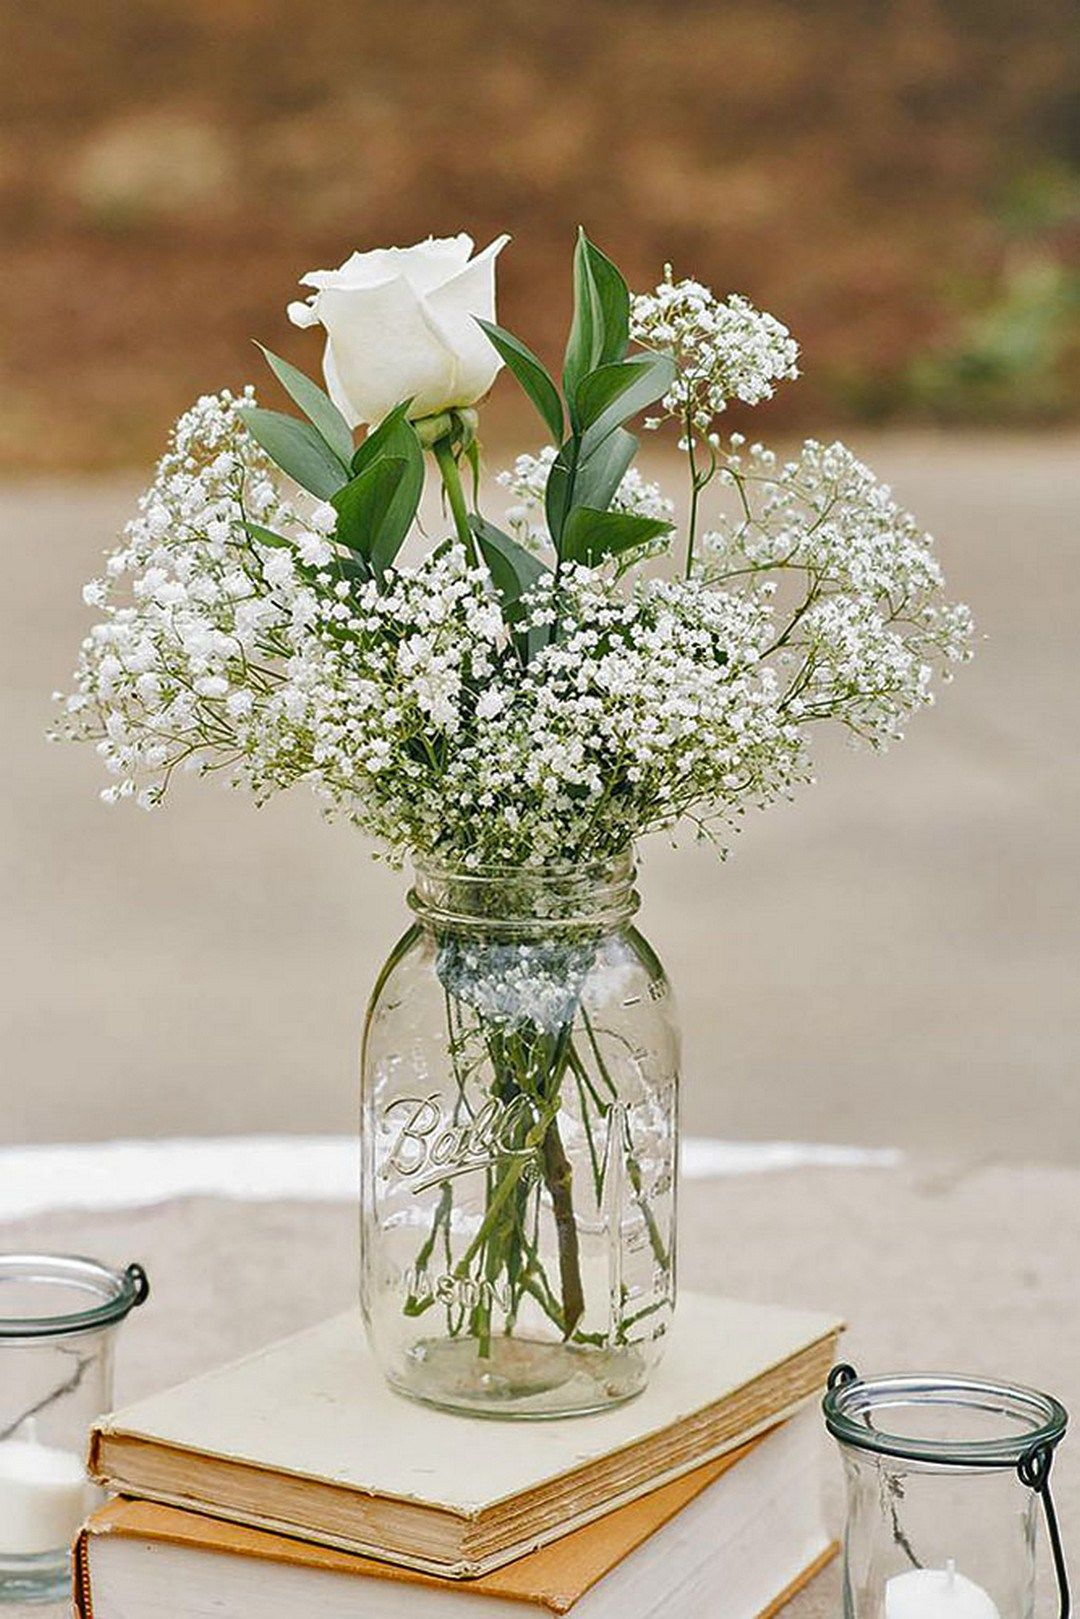 Diy wedding table decorations ideas  DIY Wedding Ideas  Ways To Save Budget For Your Big Day